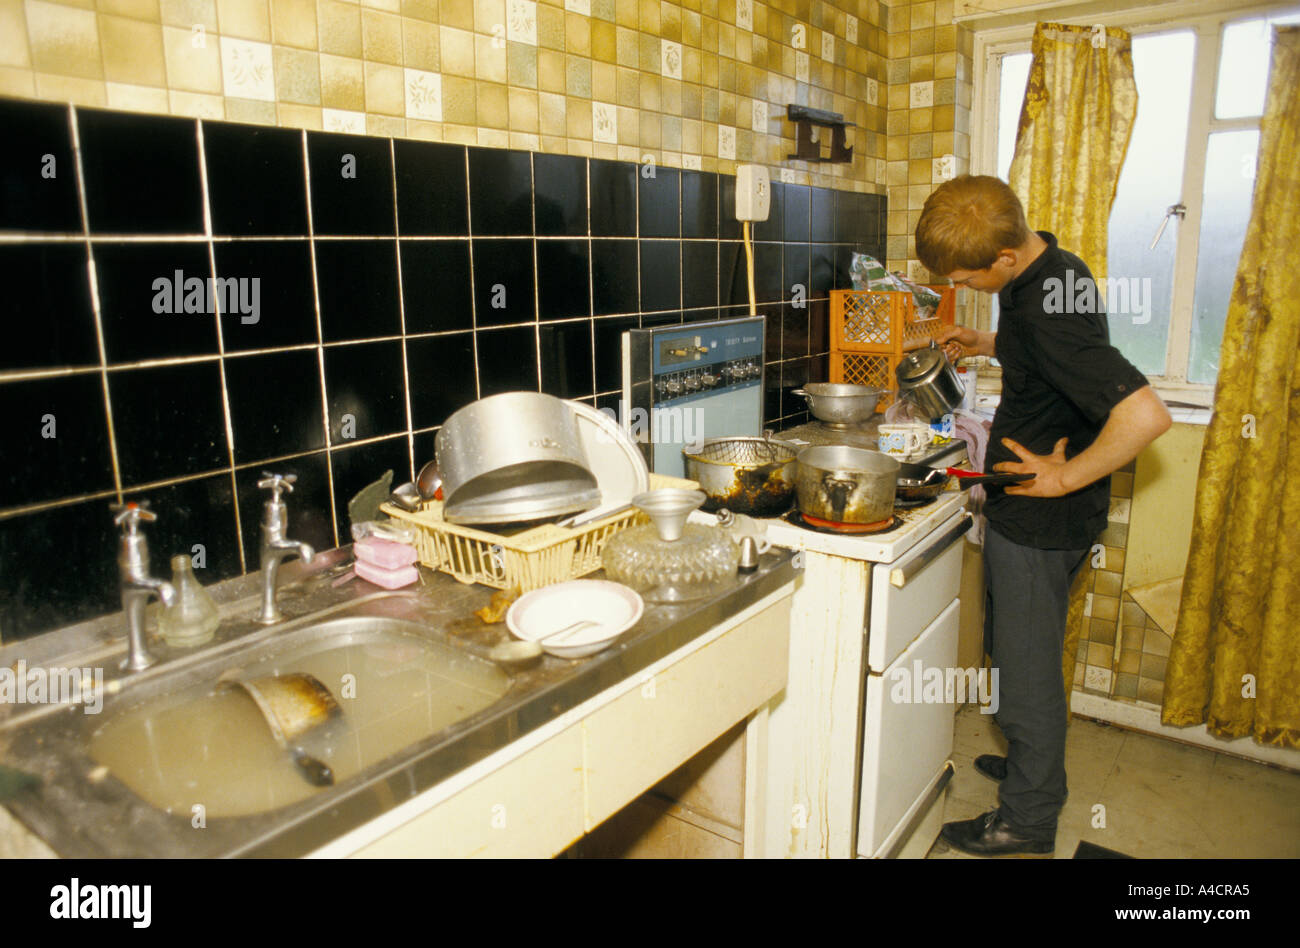 UNEMPLOYED YOUNG MAN MAKES TEA  IN HIS FILTHY KITCHEN WITH A BLOCKED SINK. BOOTLE, LIVERPOOL. ENGLAND - Stock Image